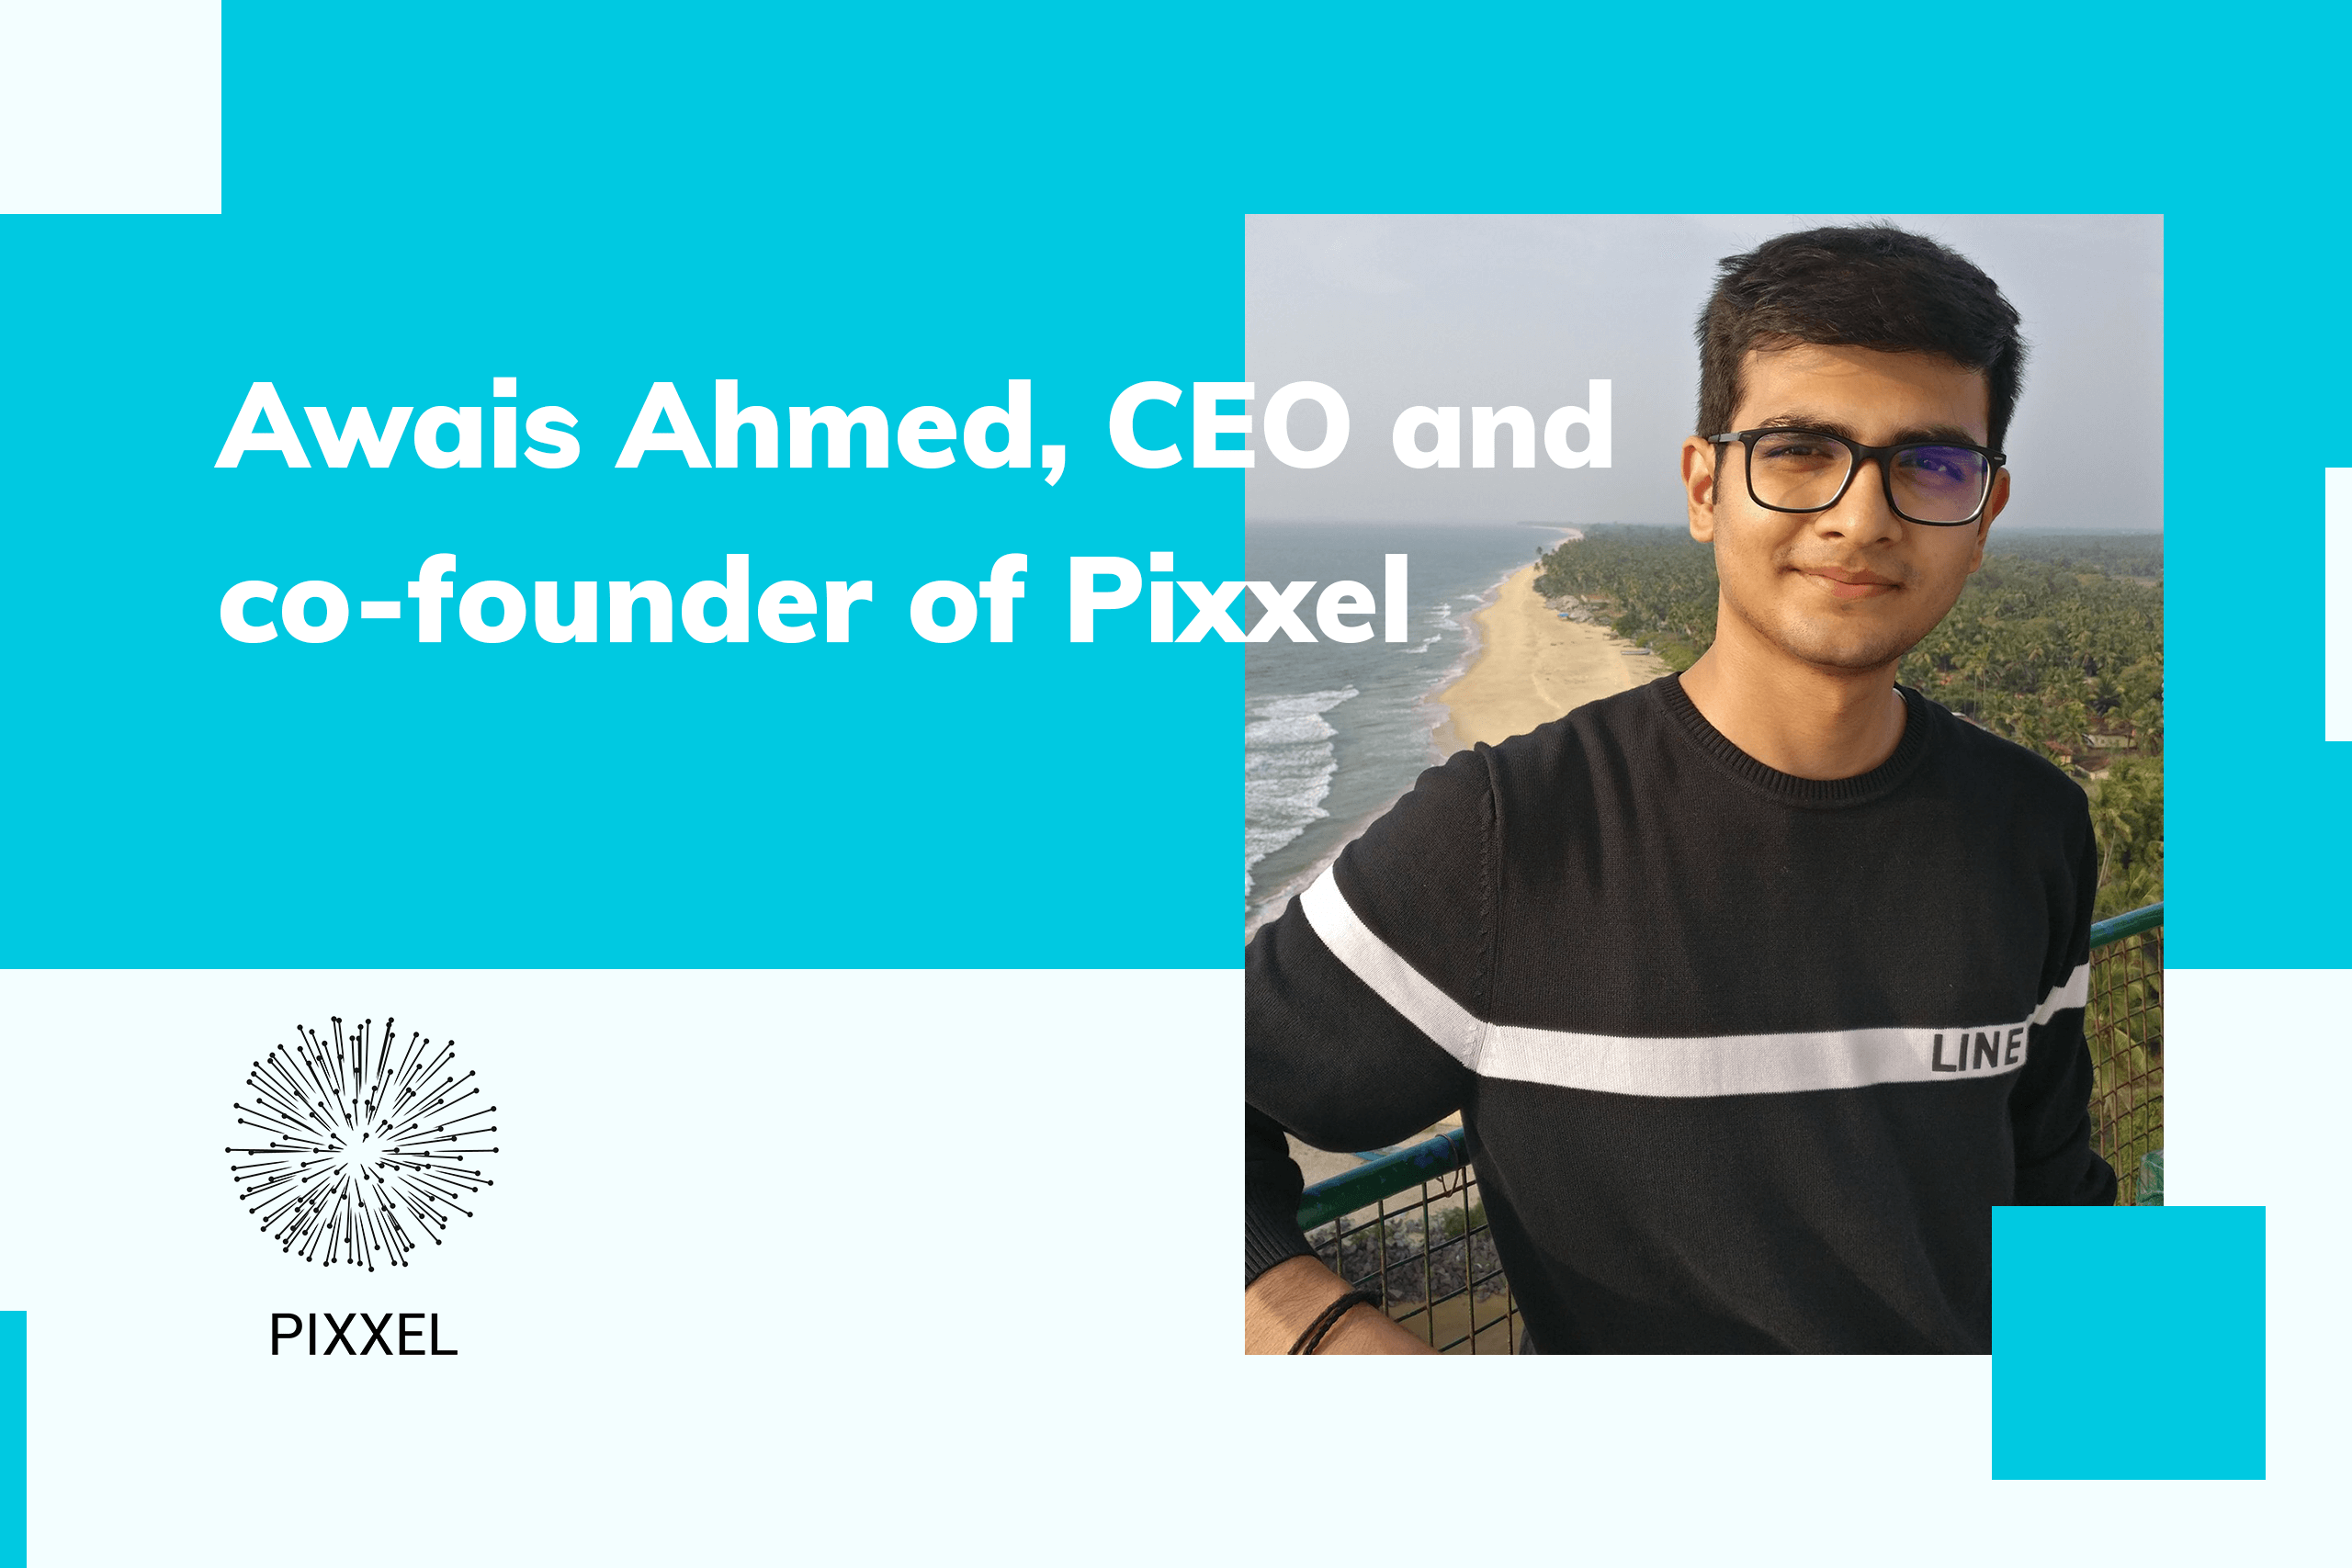 Awais Ahmed, CEO and co-founder of Pixxel